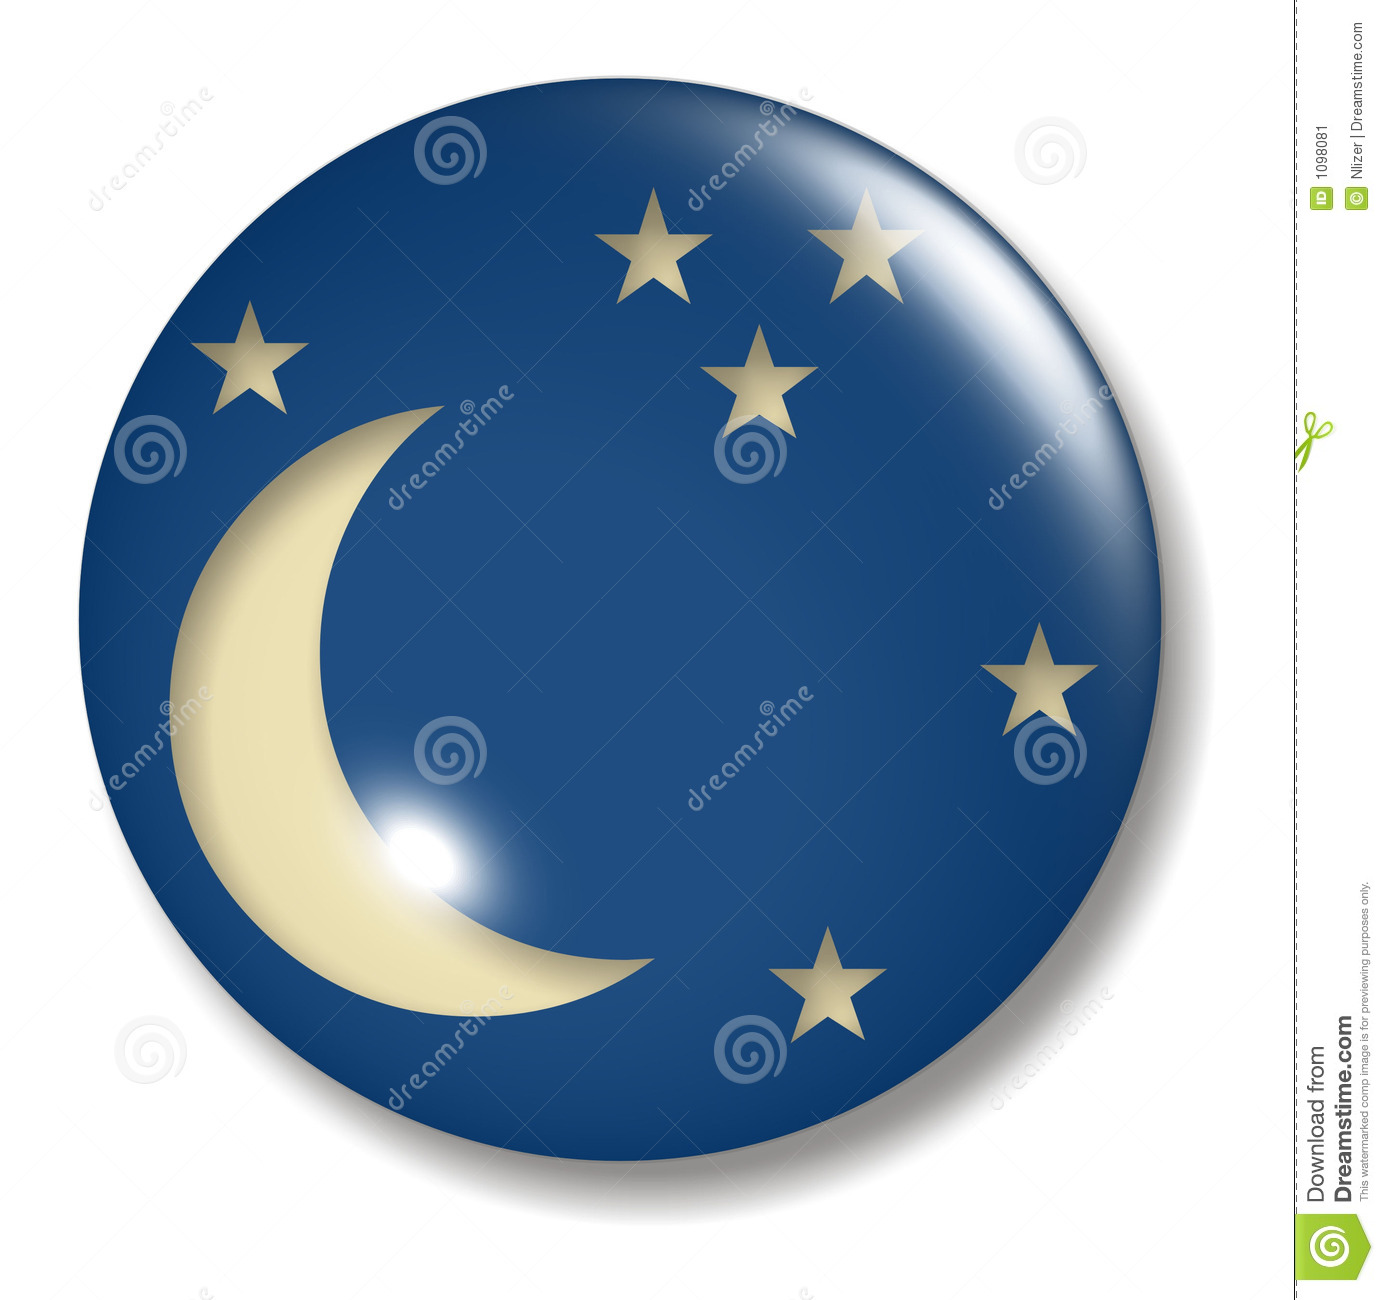 Quarter Moon Clipart Quarter Moon Button Orb